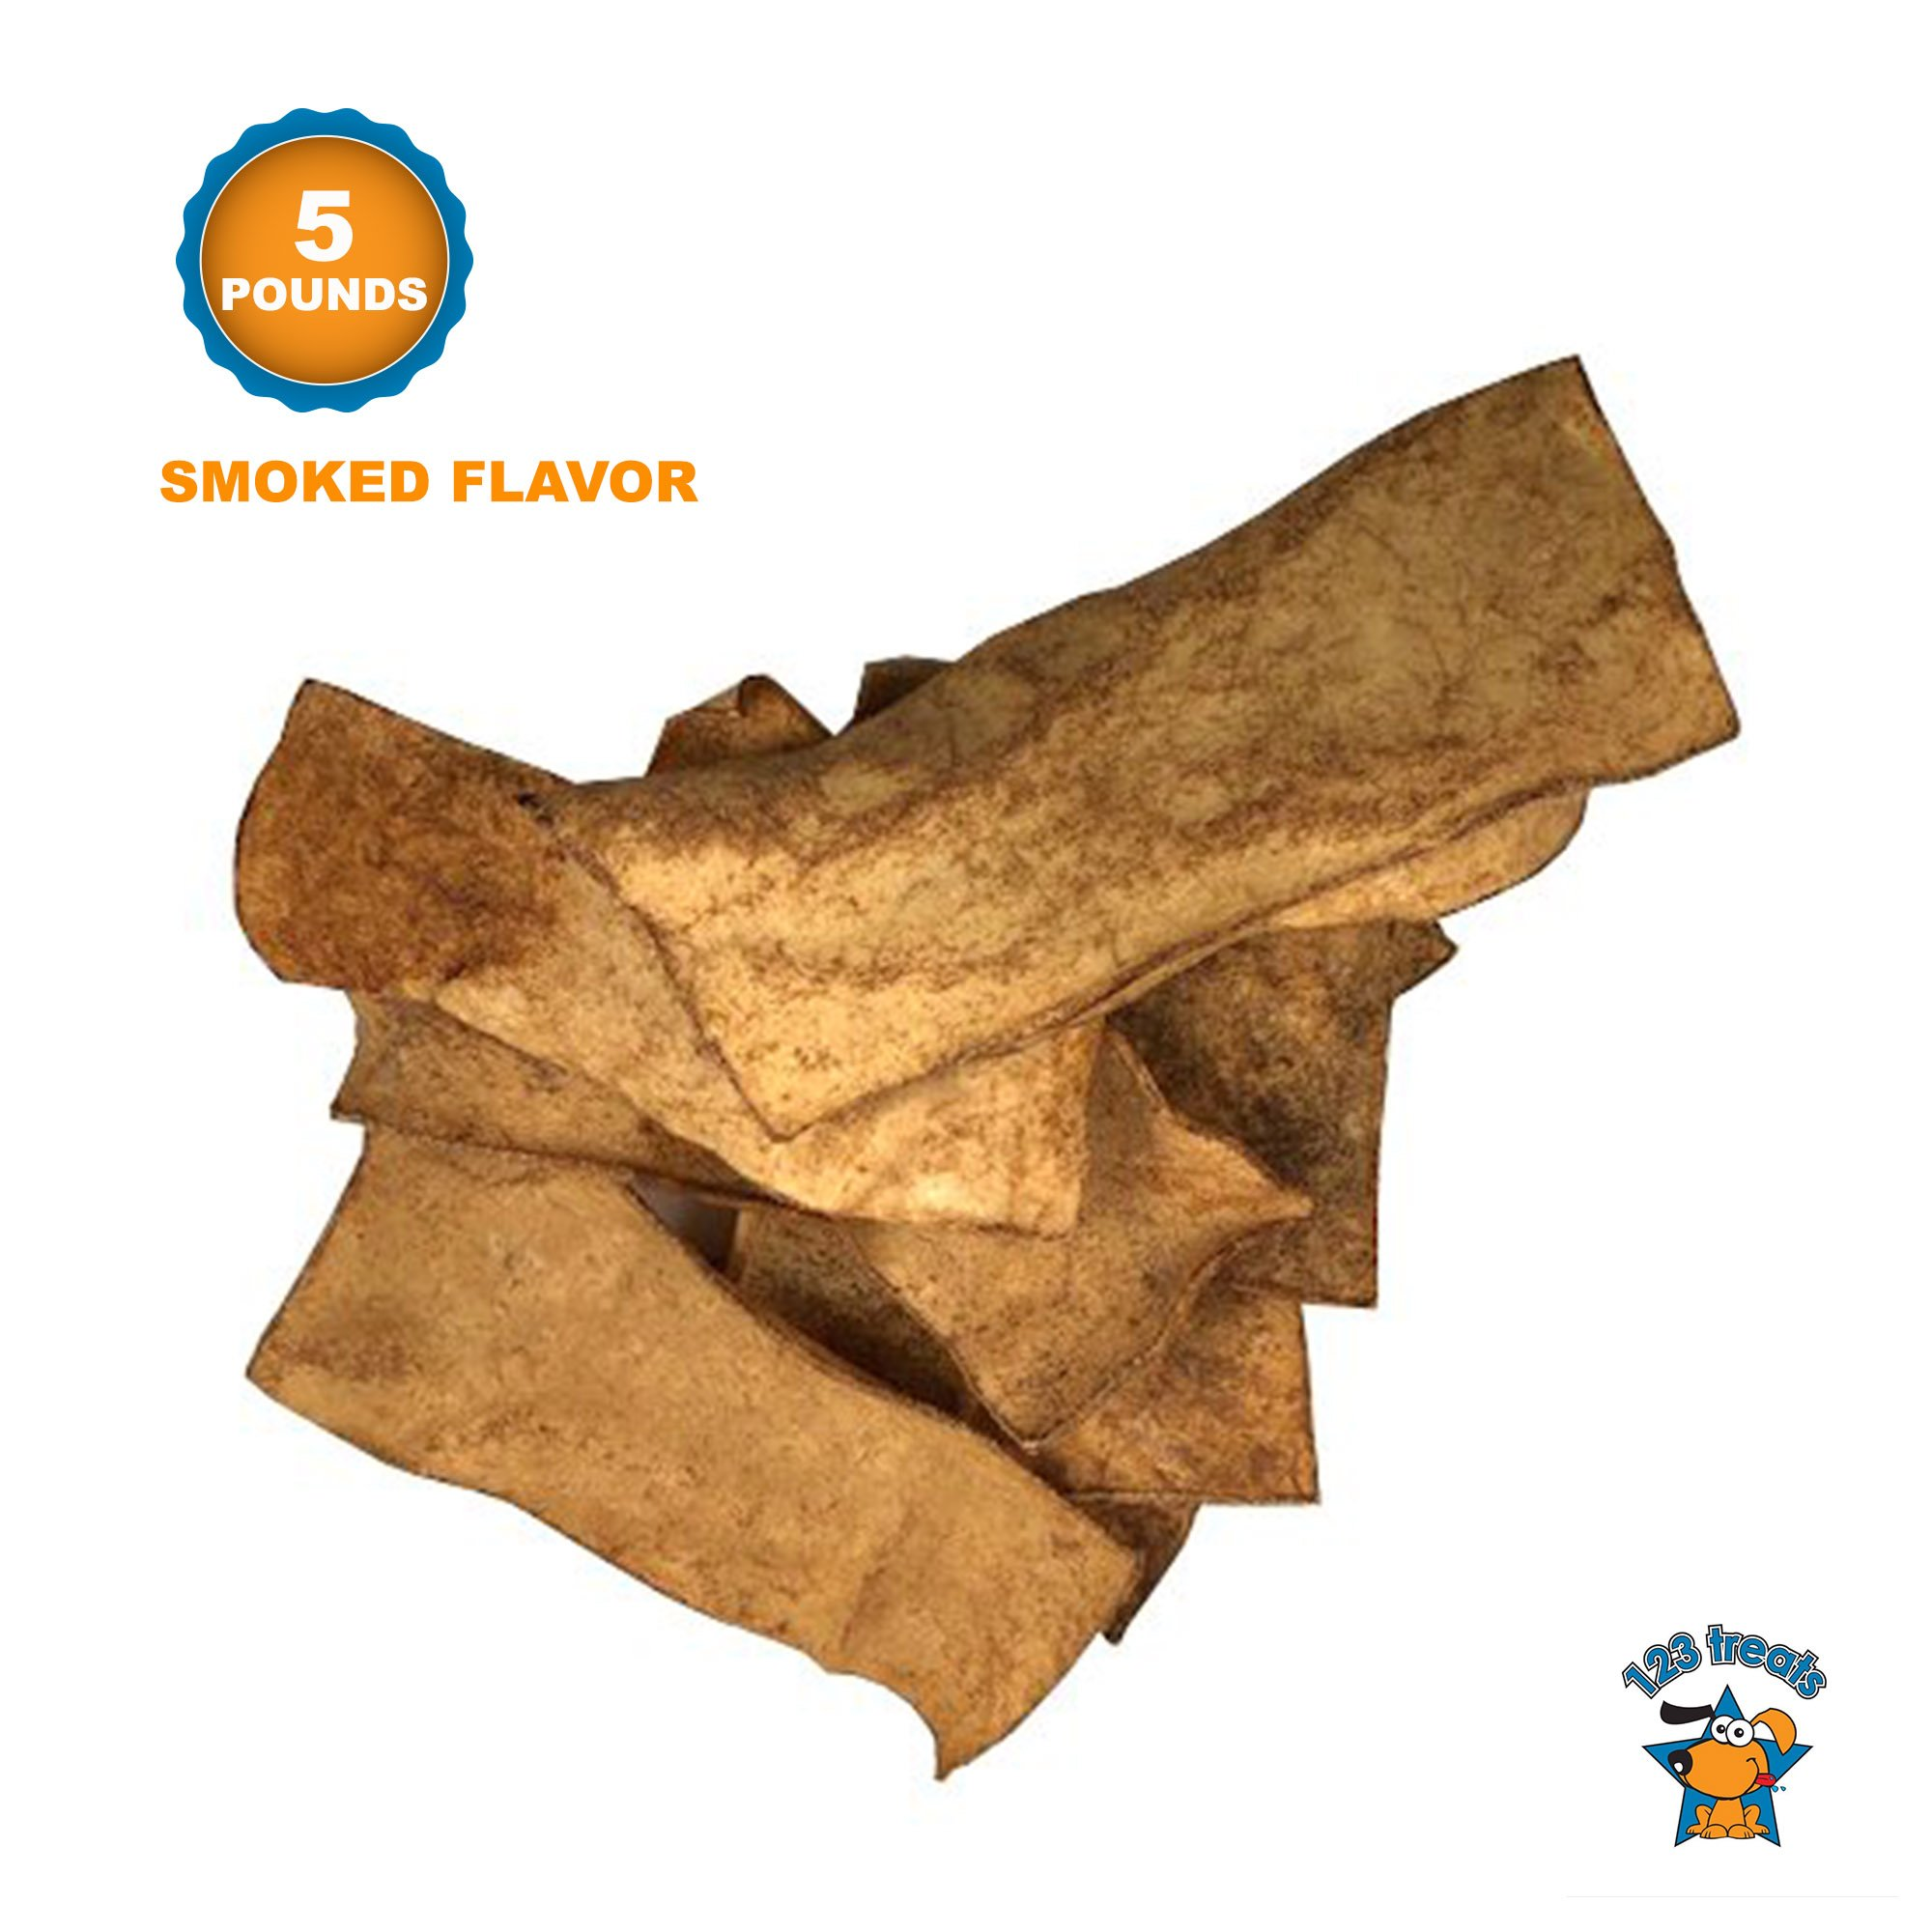 123 Treats - Rawhide Chips Dog Chews (5 LBS - Smoked Flavor) 100% All-Natural Grass-Fed Free-Range Beef Hide for Dogs with No Hormones, Additives or Chemicals by 123 Treats